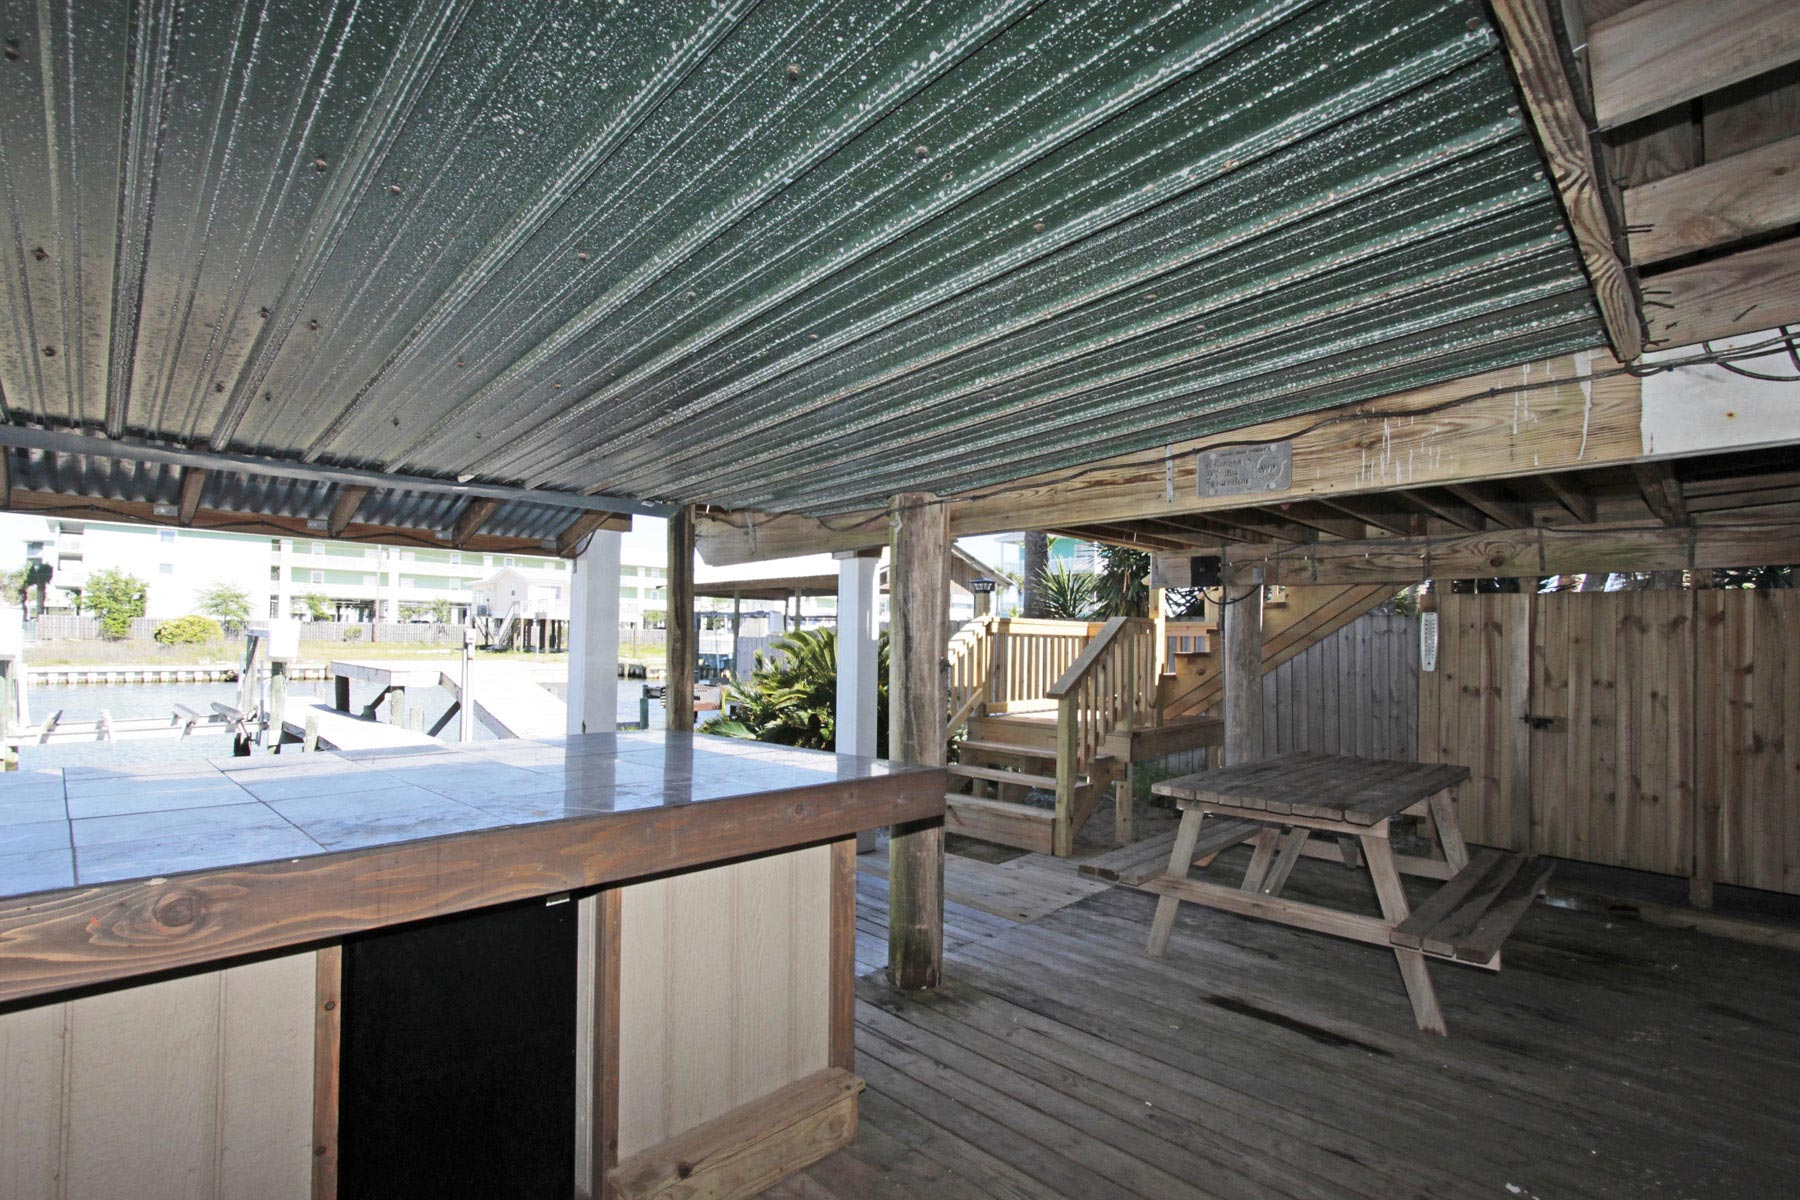 Hang-out area under deck